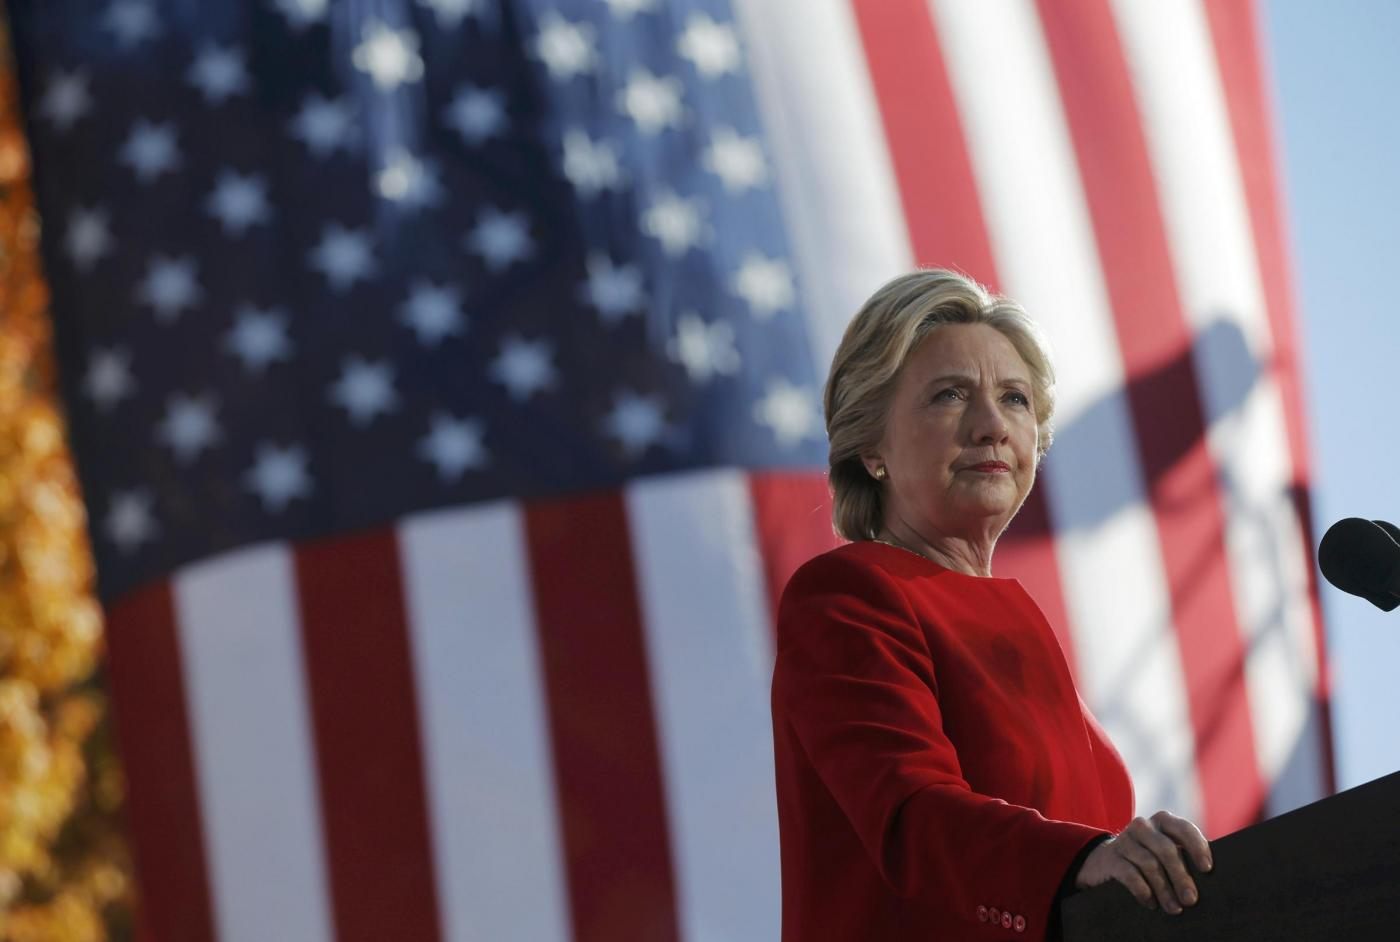 Usa 2016 Clinton perde e vince Trump